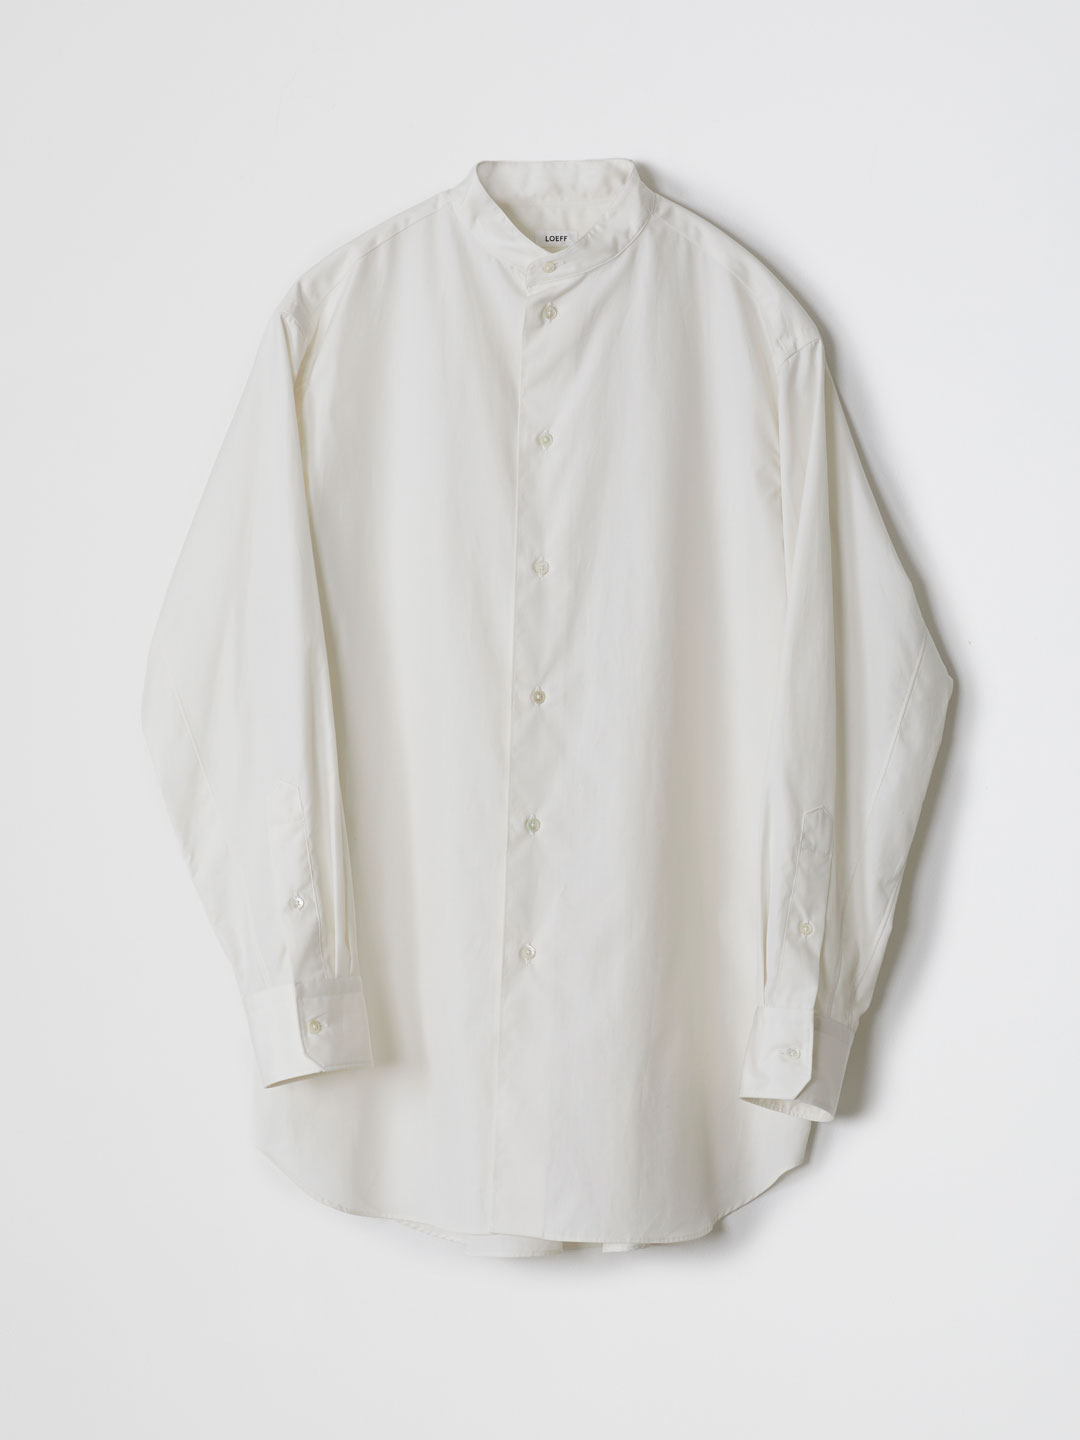 Cotton Broad Band Collar Shirt - Off White